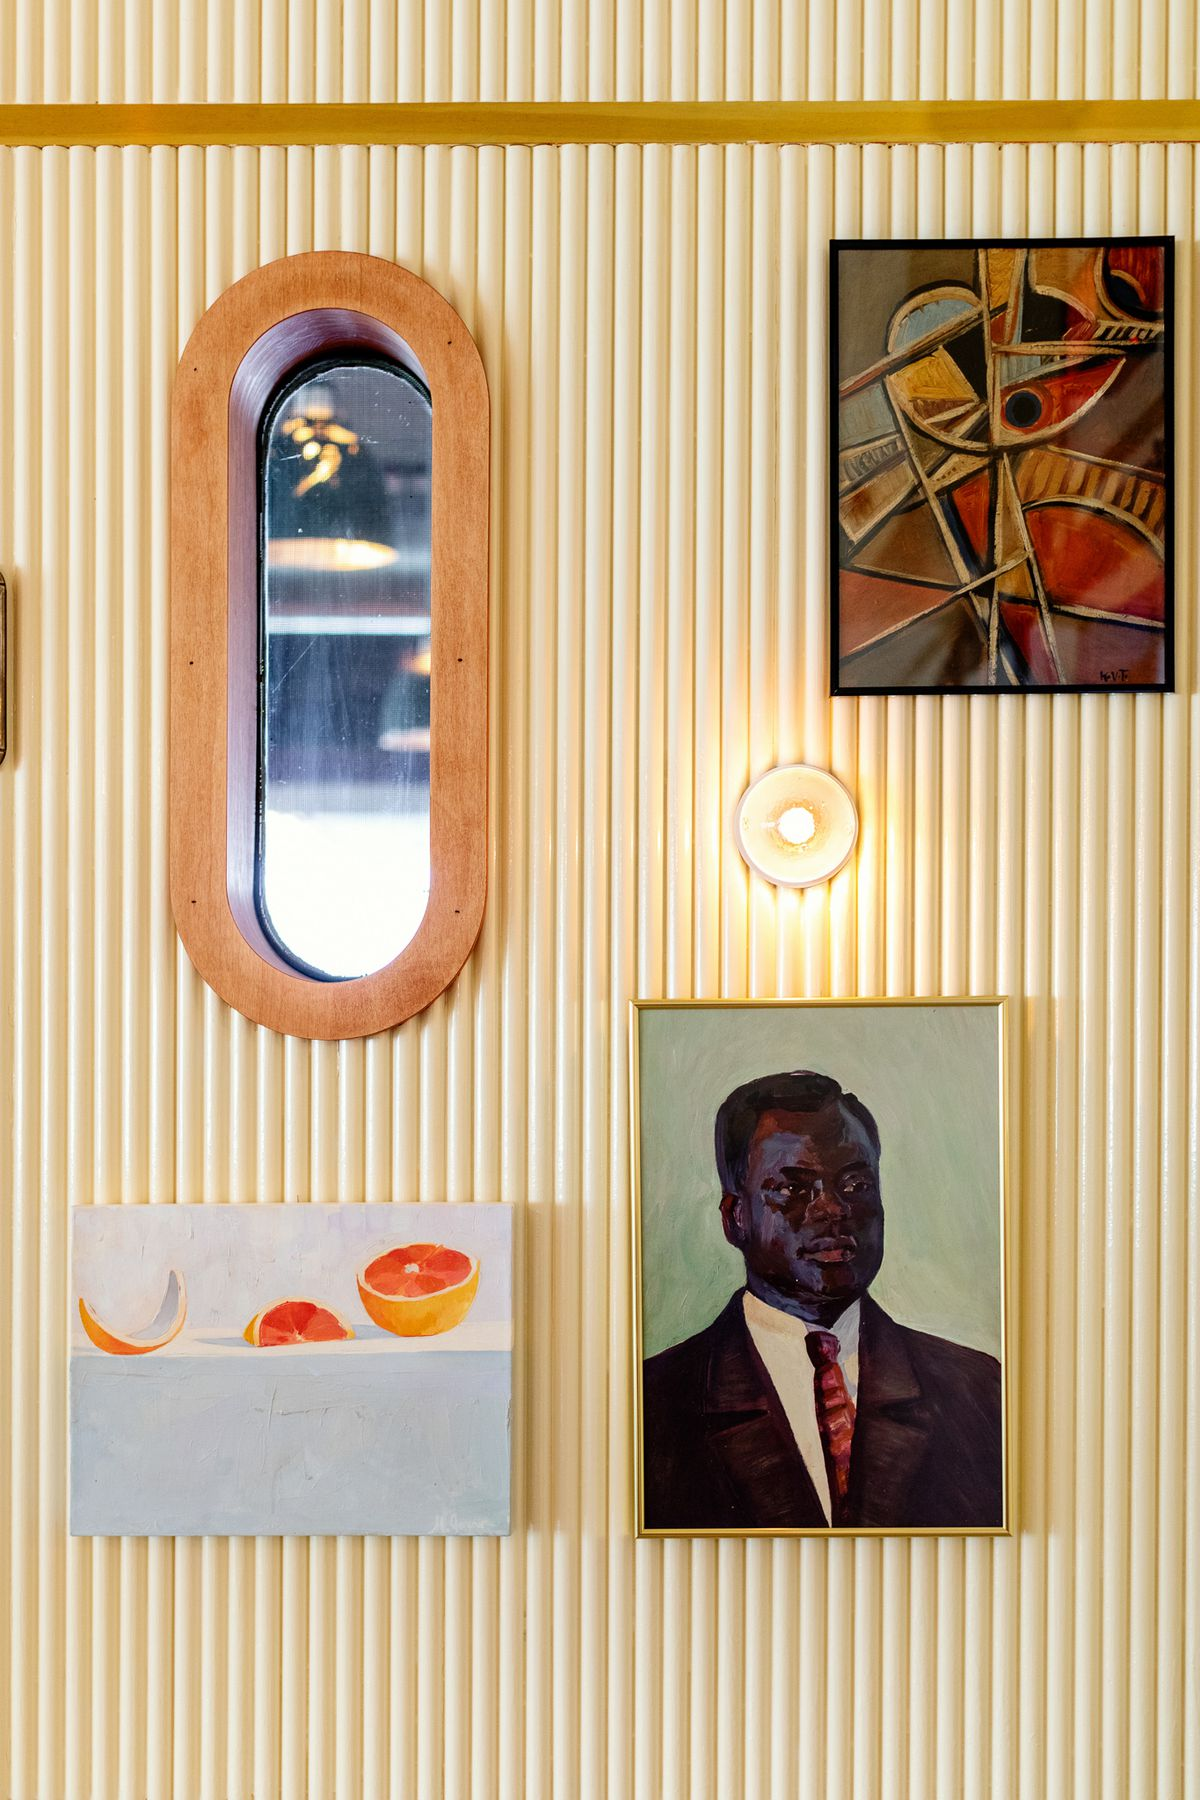 Three art pieces and a mirror on the wall of the dining room